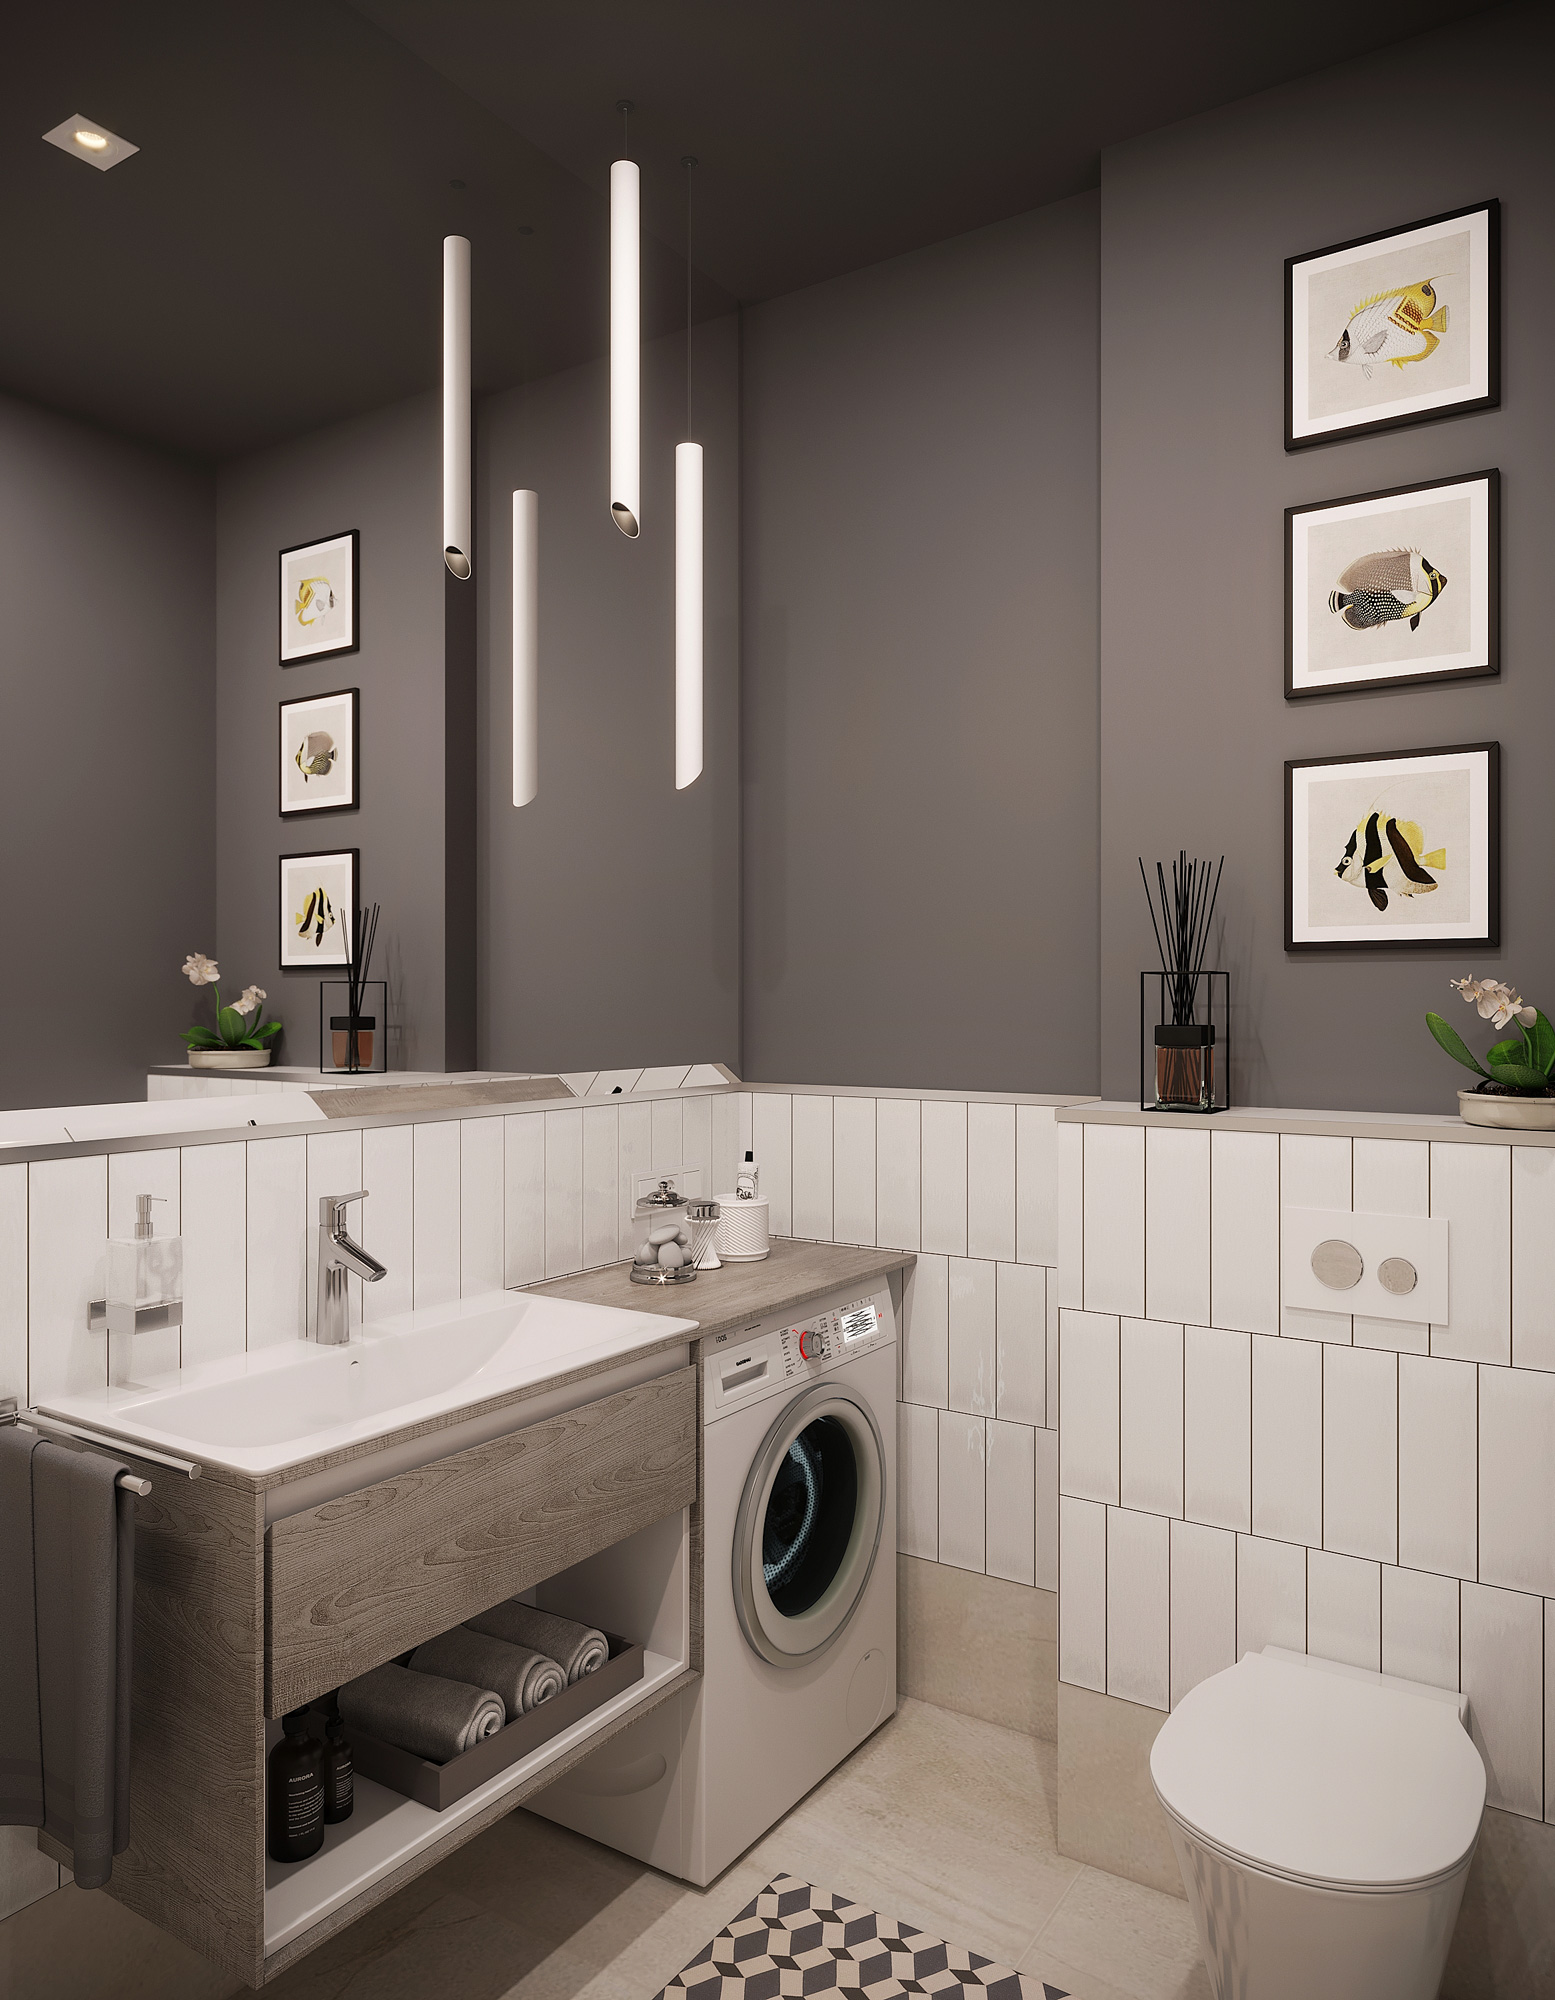 Mednieku 5 3d interior render visualization 15